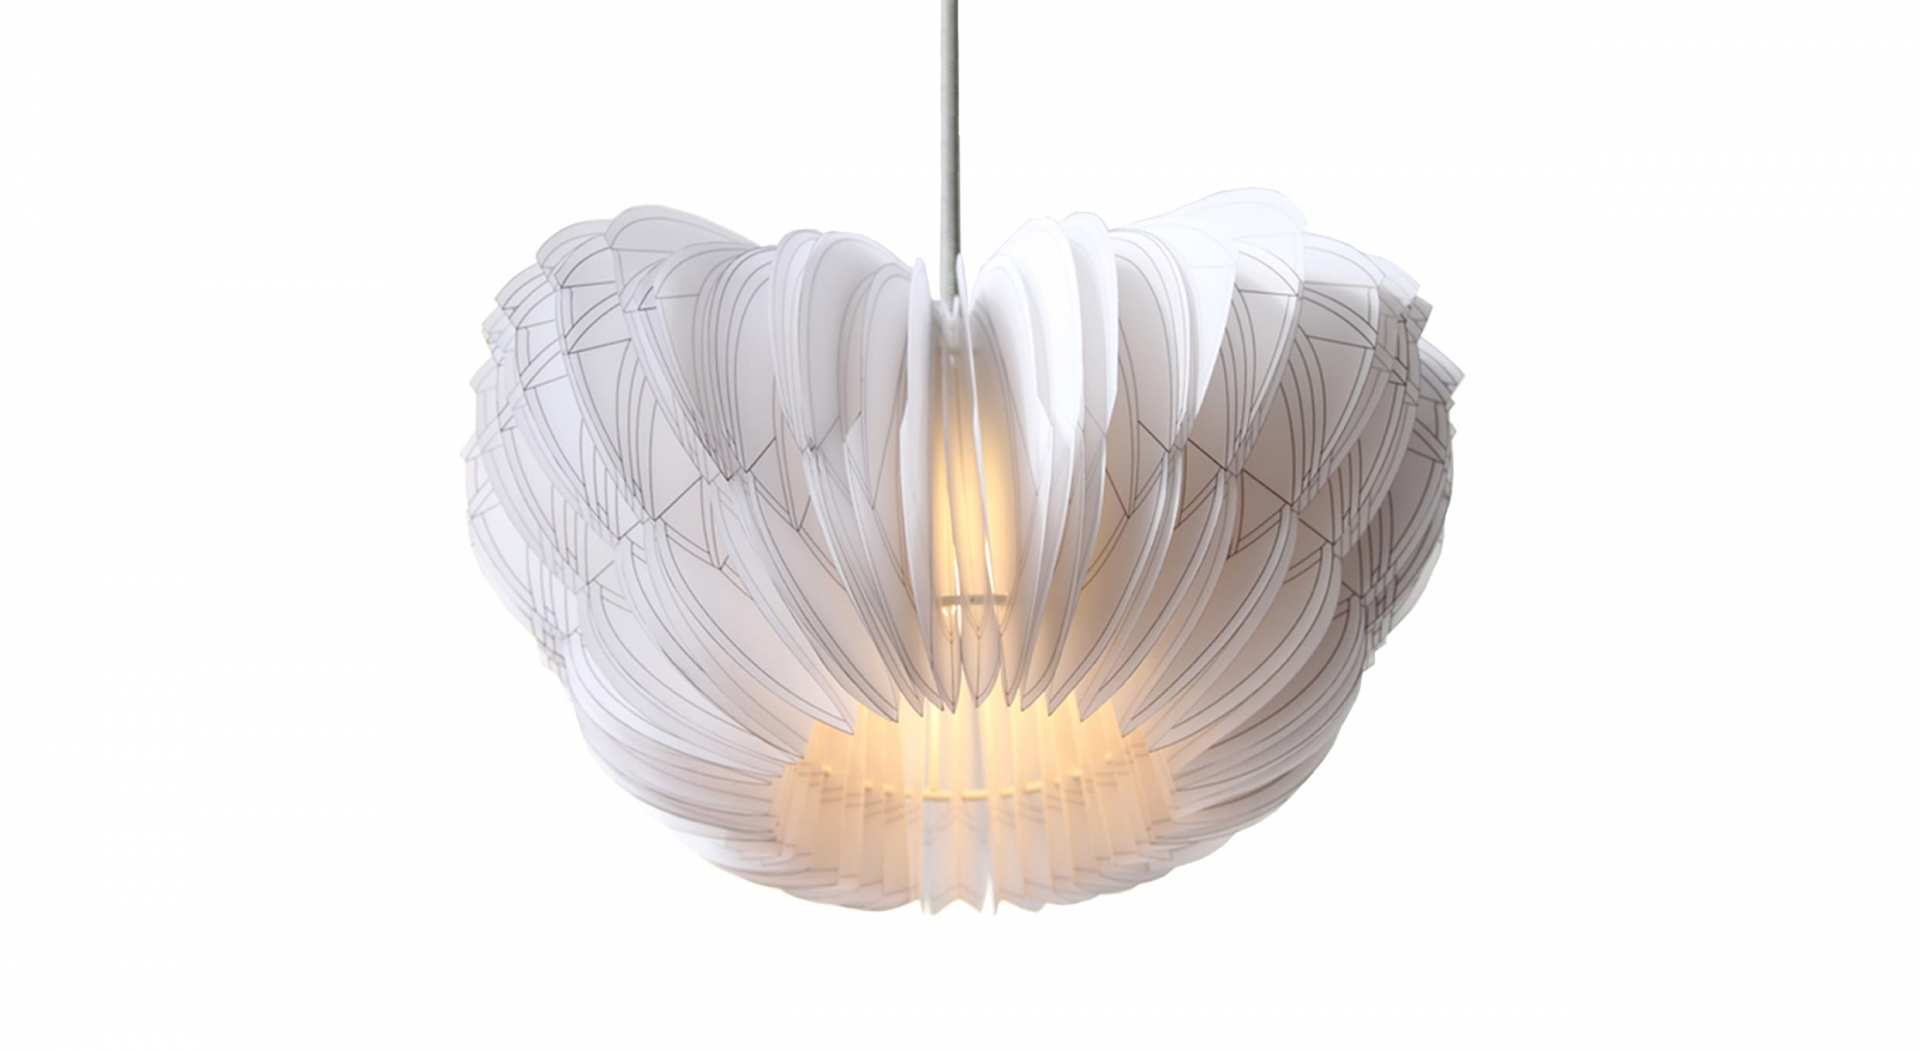 butterfly_paper_design_lamp_verlichting_product_studio_arntzen